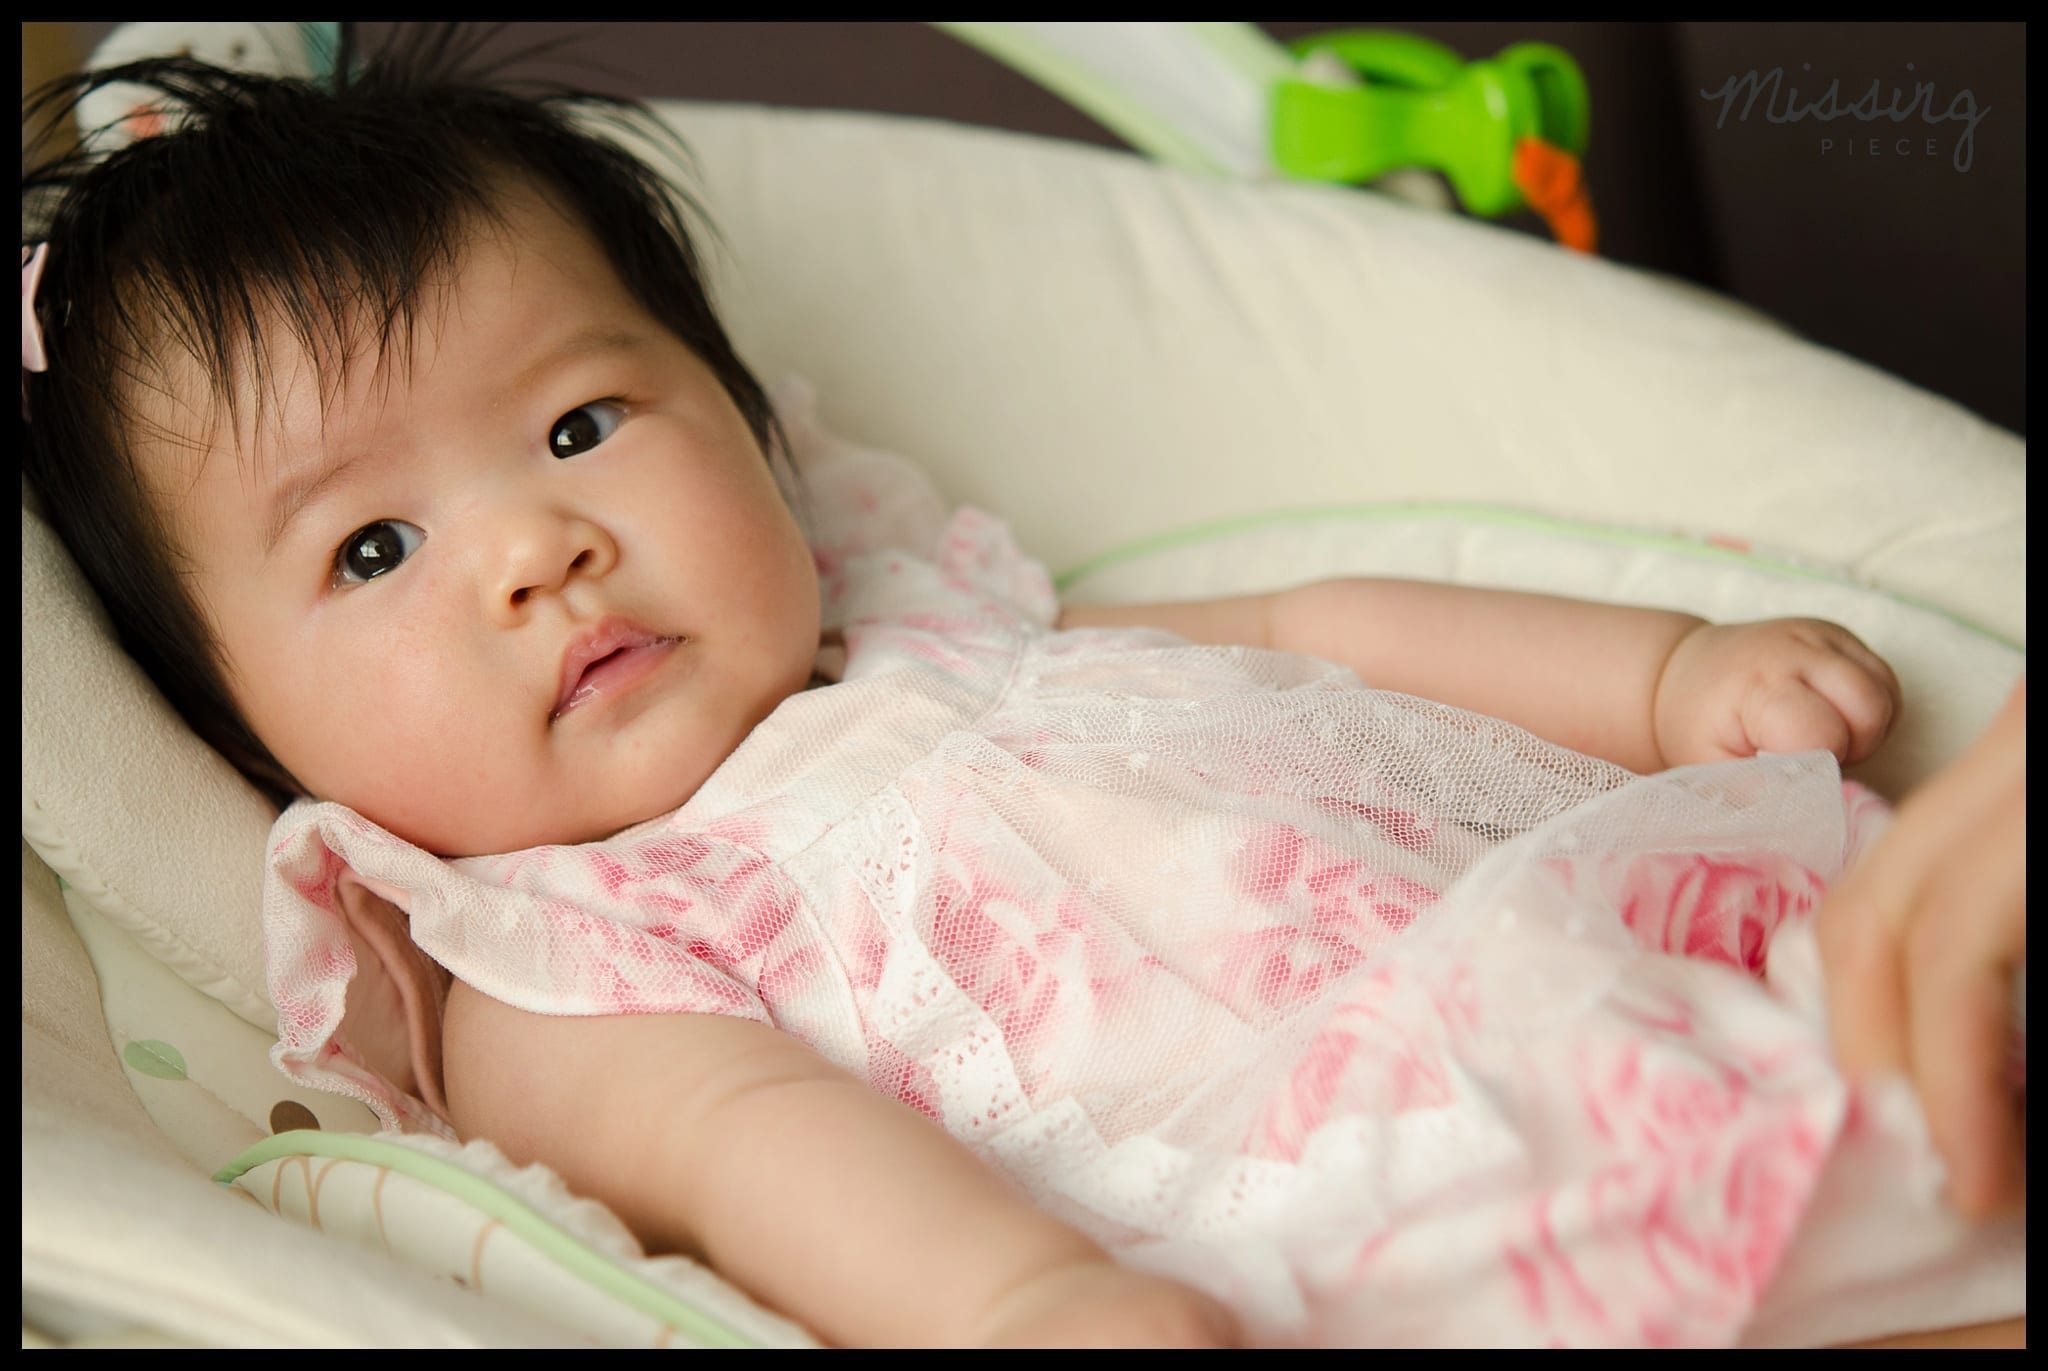 Baby looks at the camera as she sits on her crib